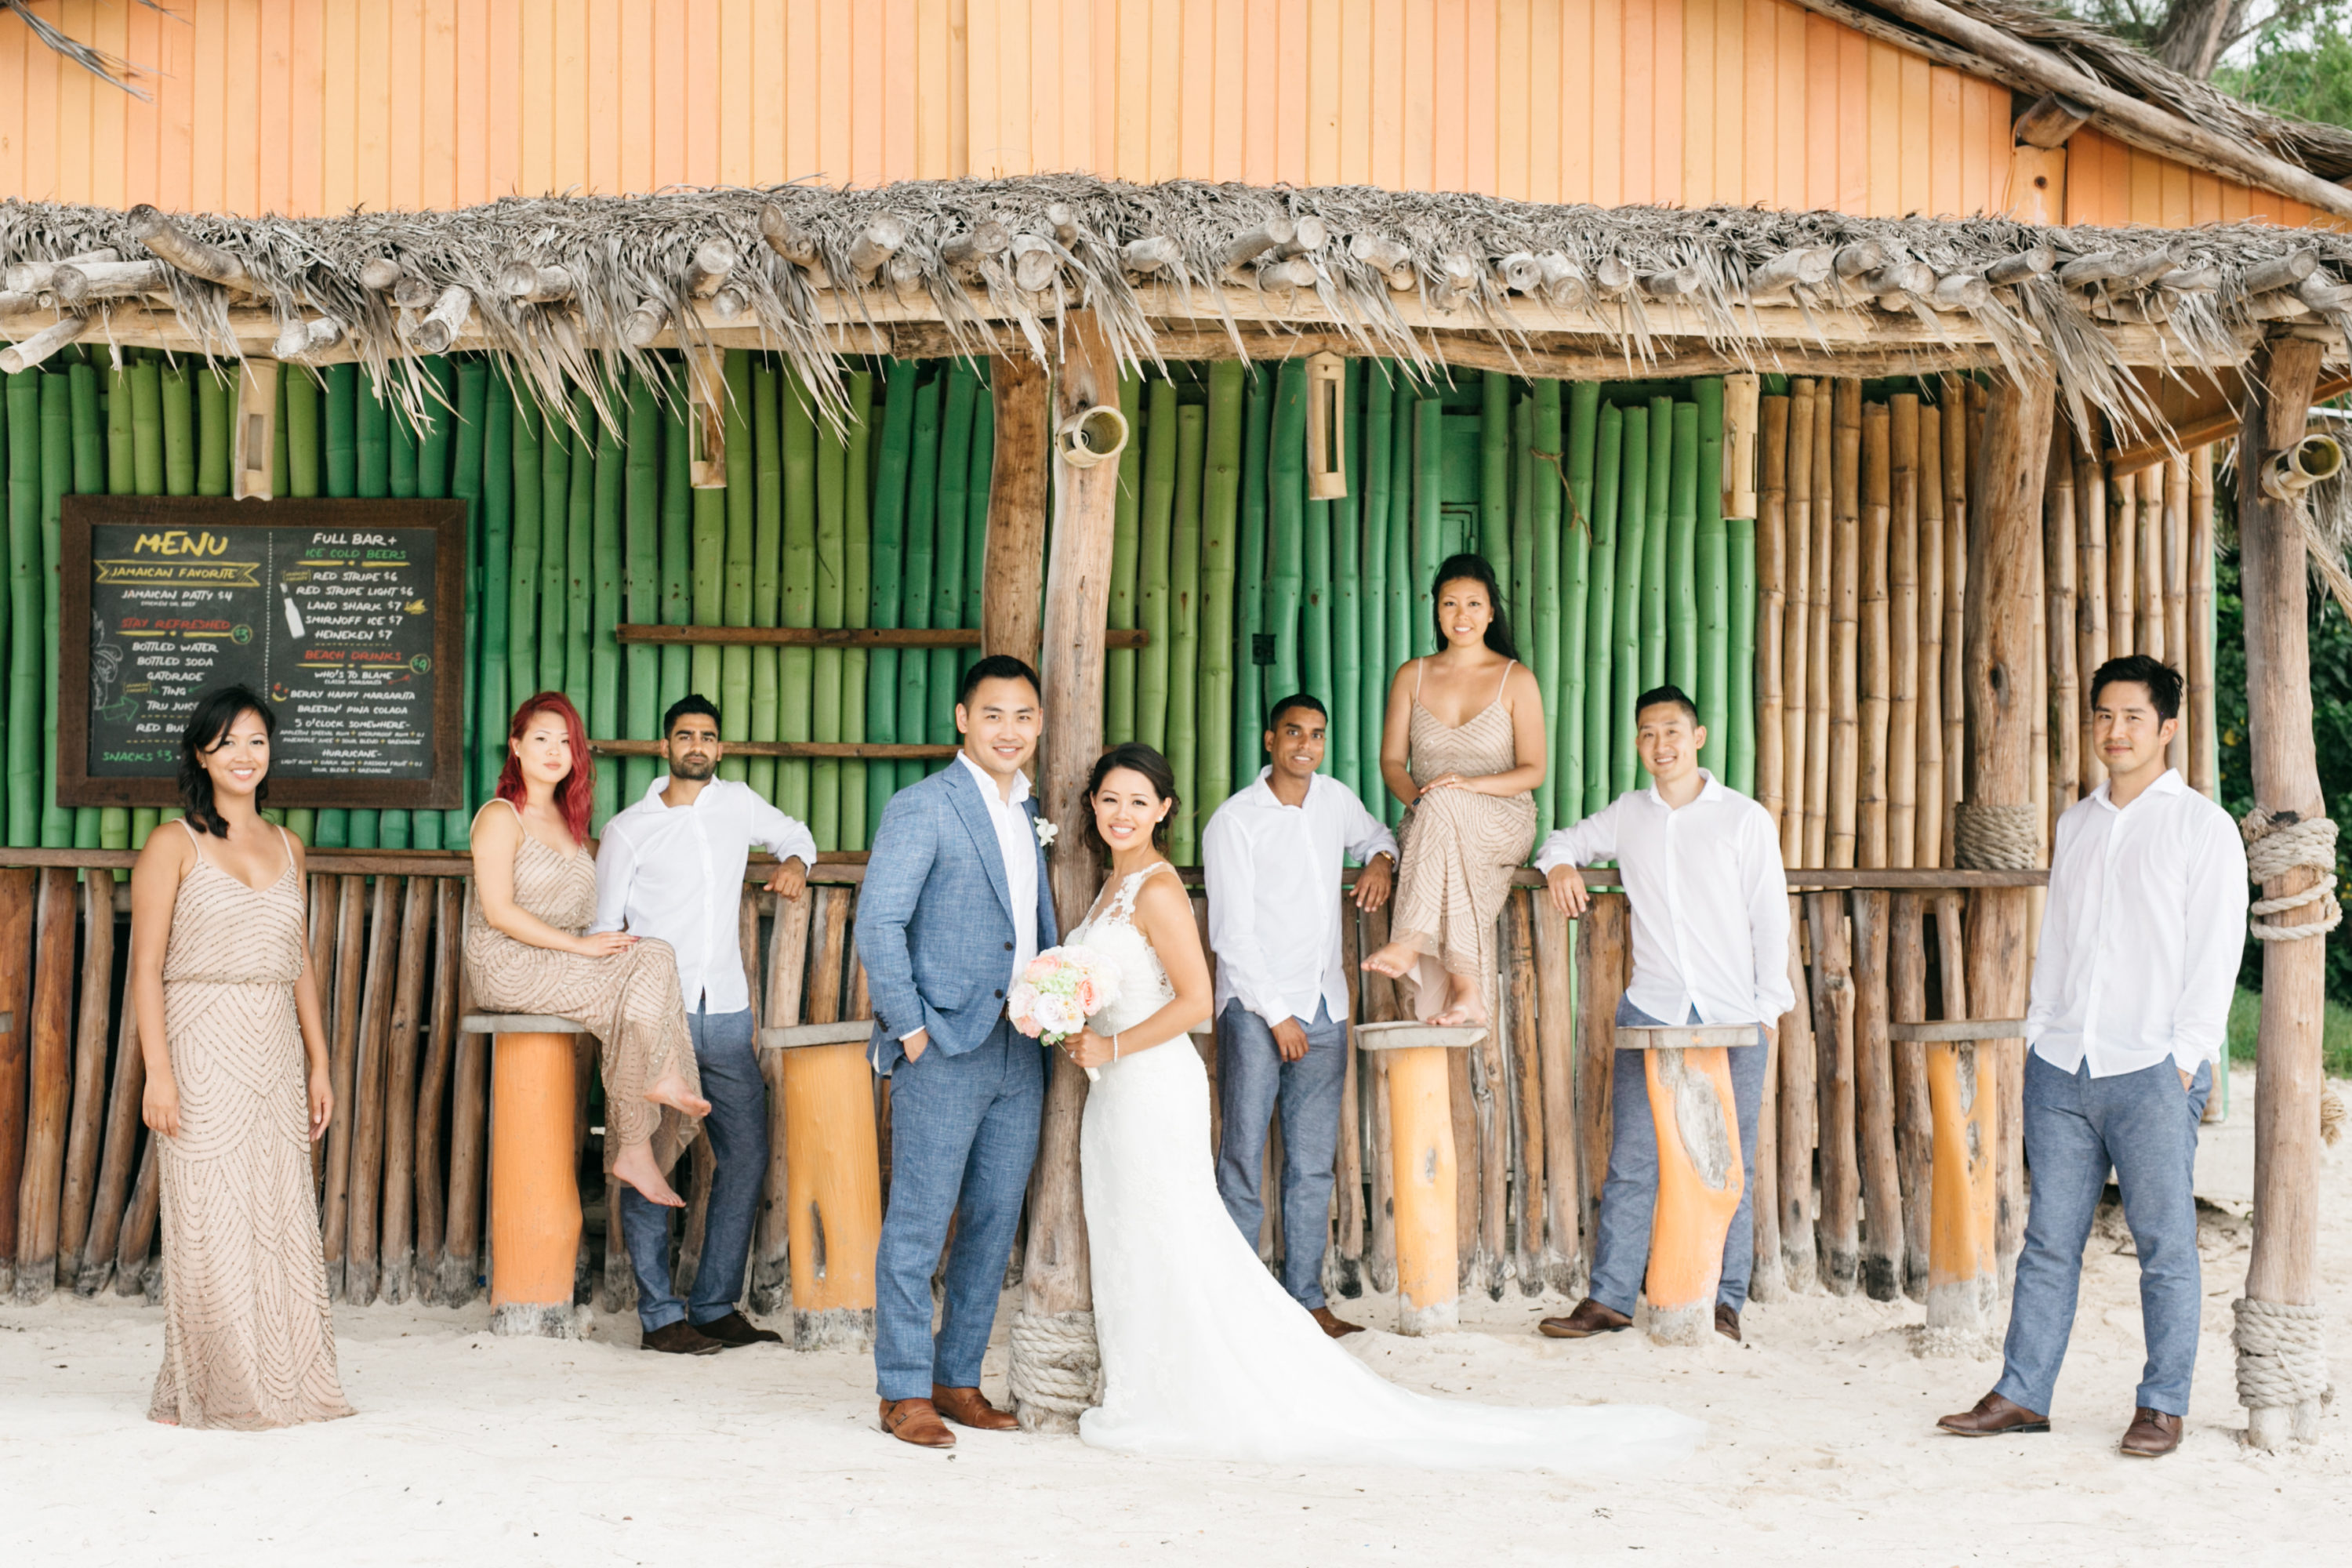 Bridal party photo at Royalton White Sands Resort